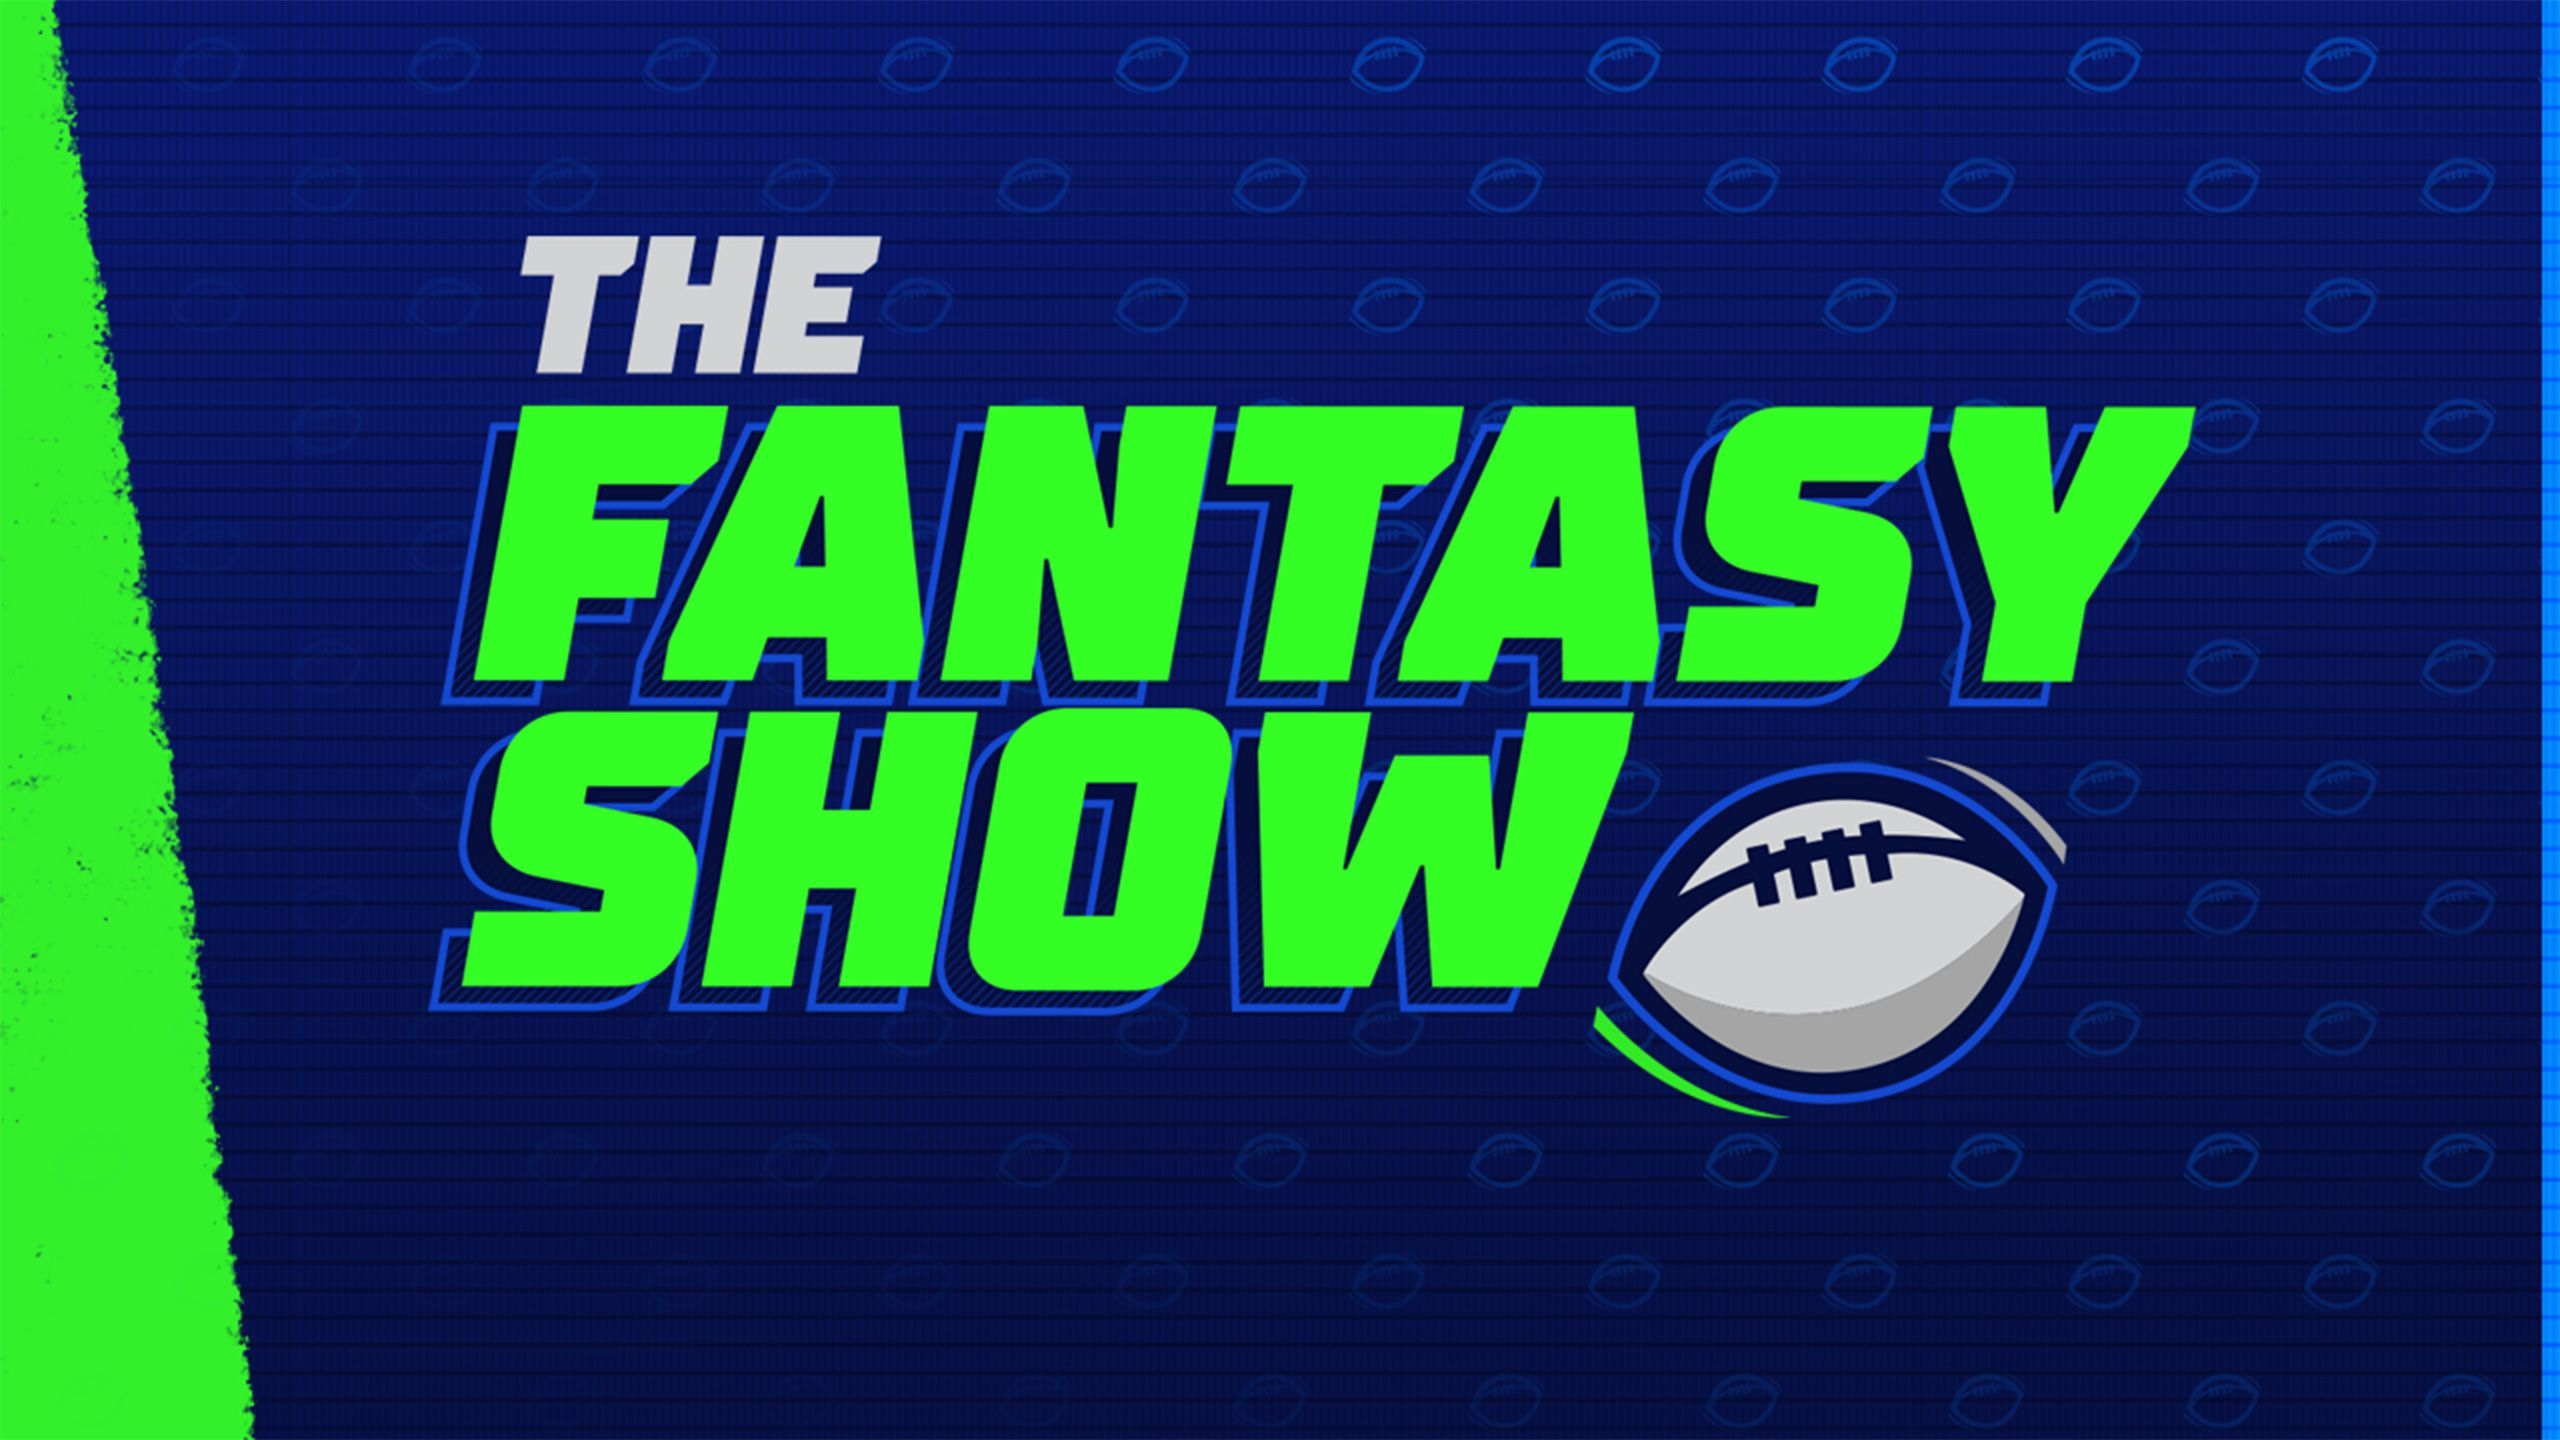 Fri, 10/20 - The Fantasy Show presented by E*Trade